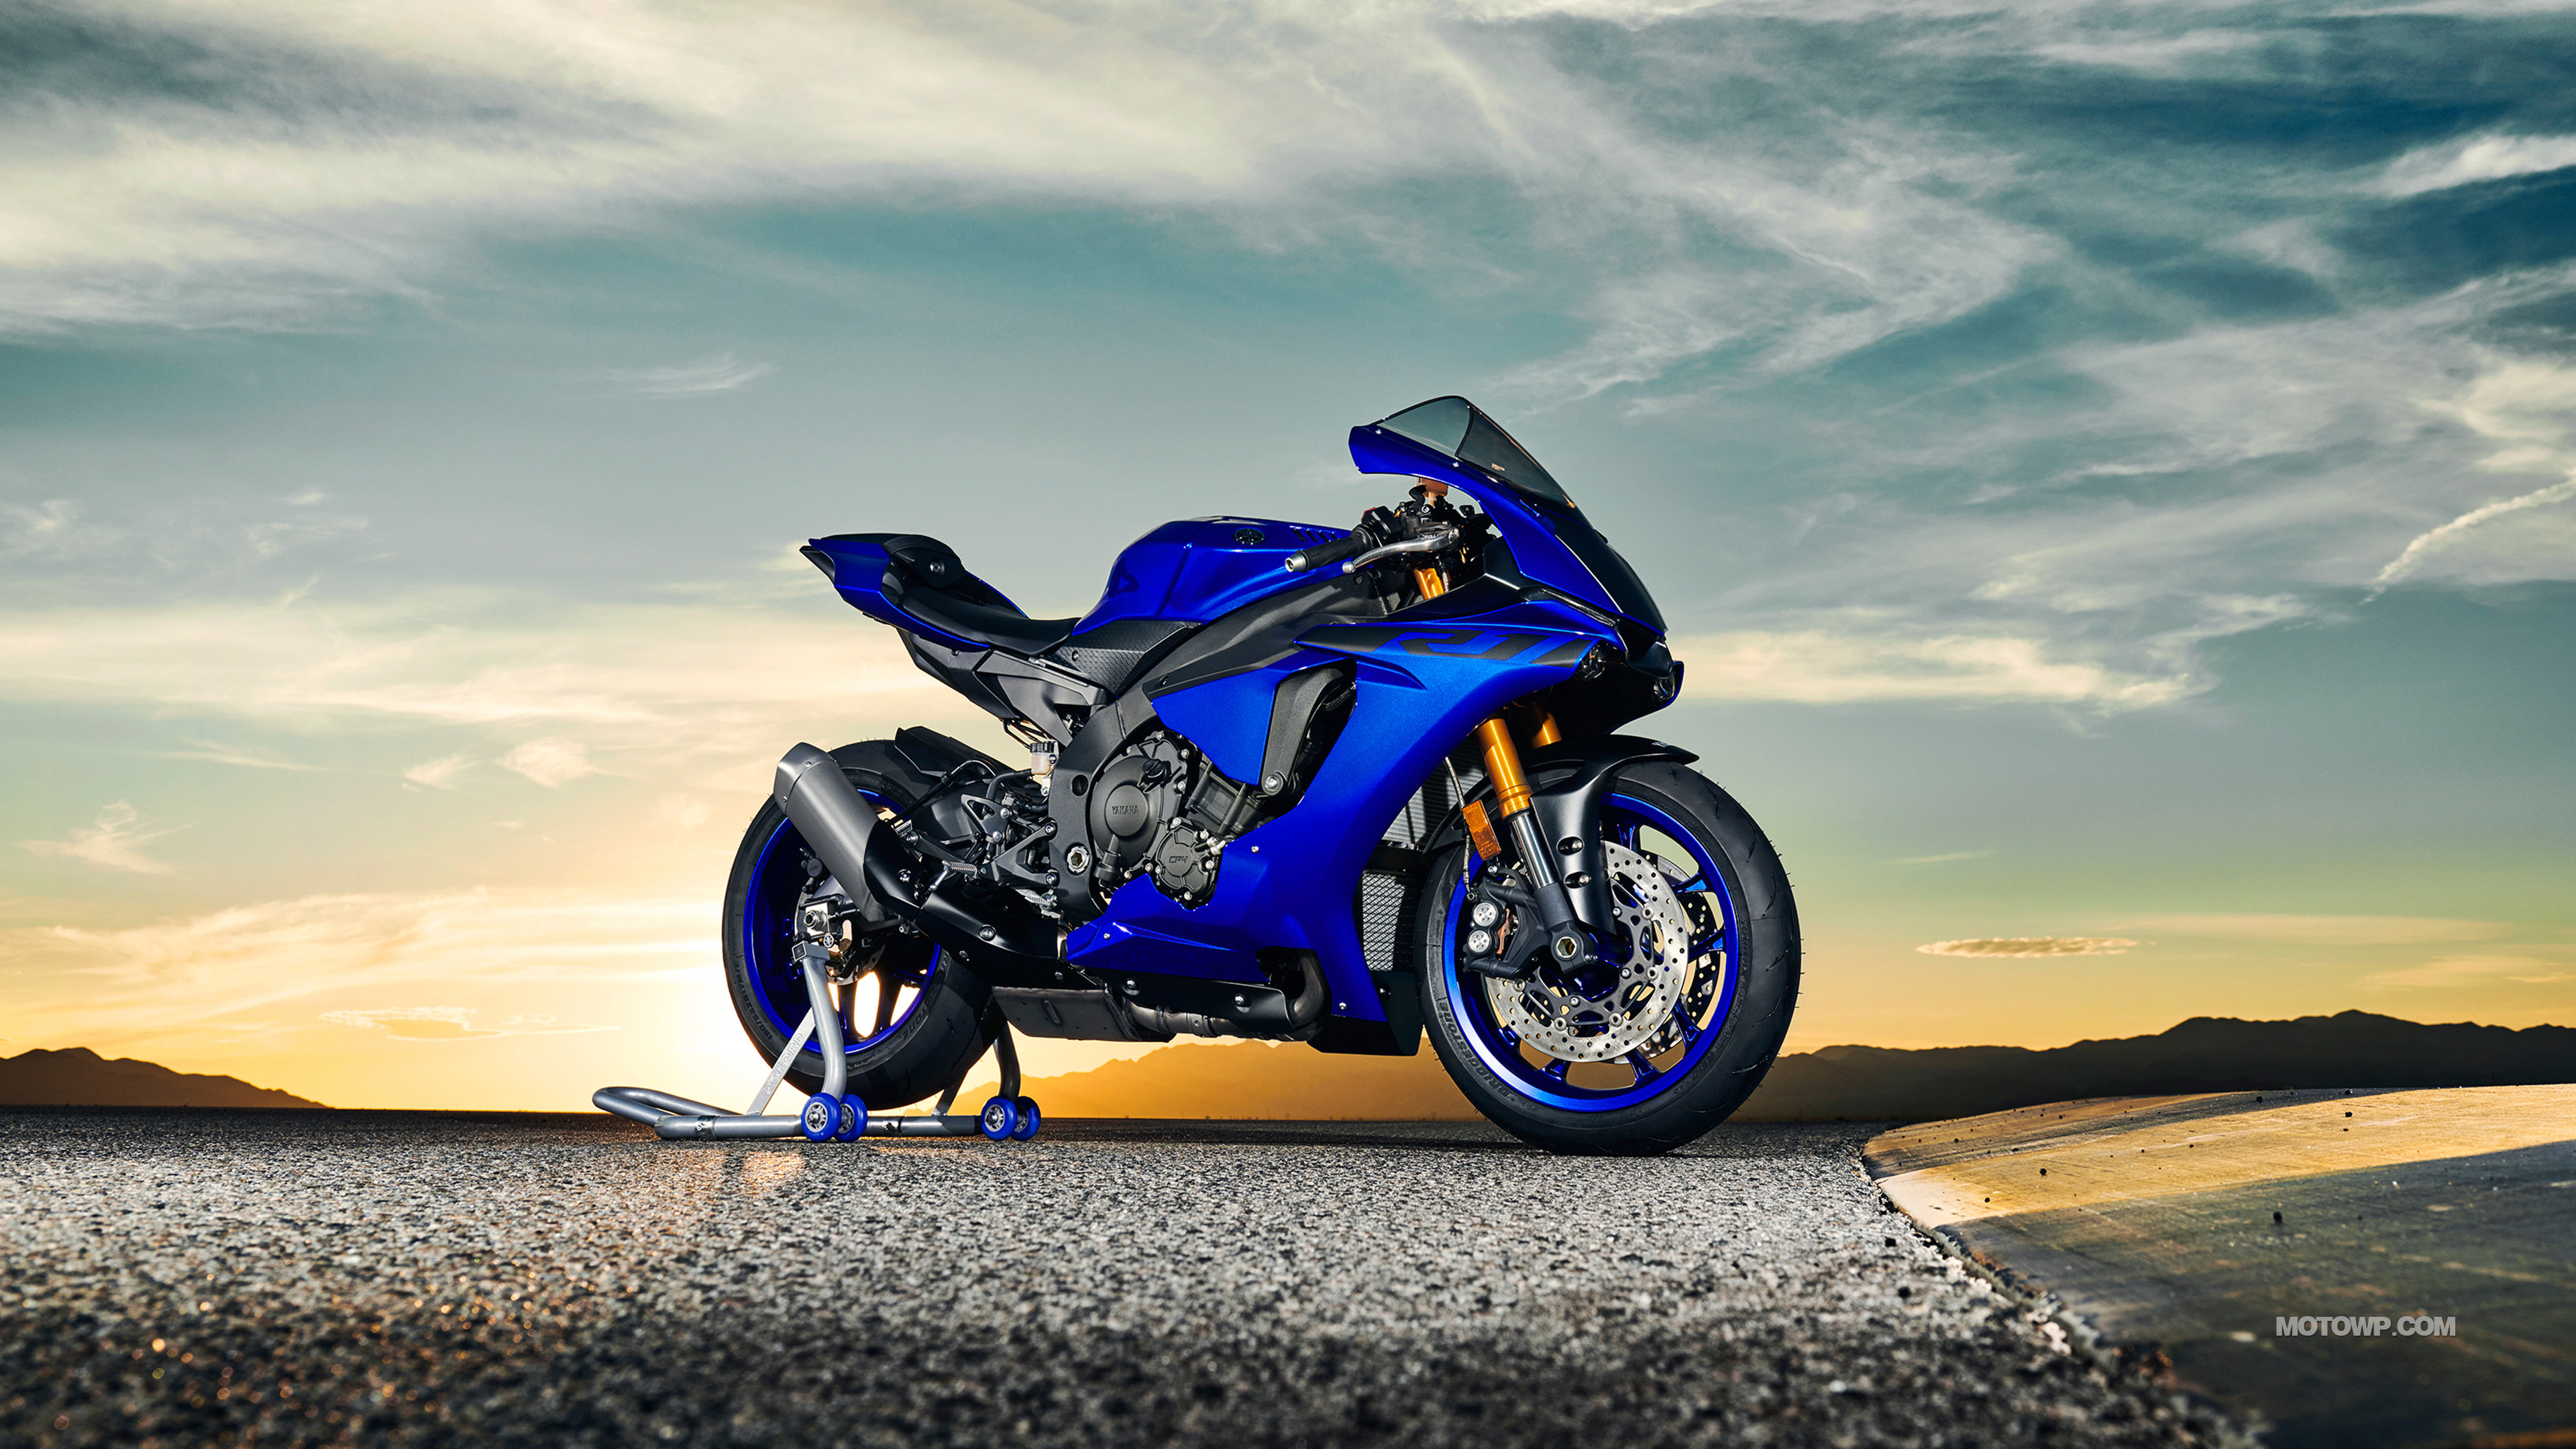 Res: 3840x2160, Motorcycles wallpapers Yamaha YZF-R1 - 2018